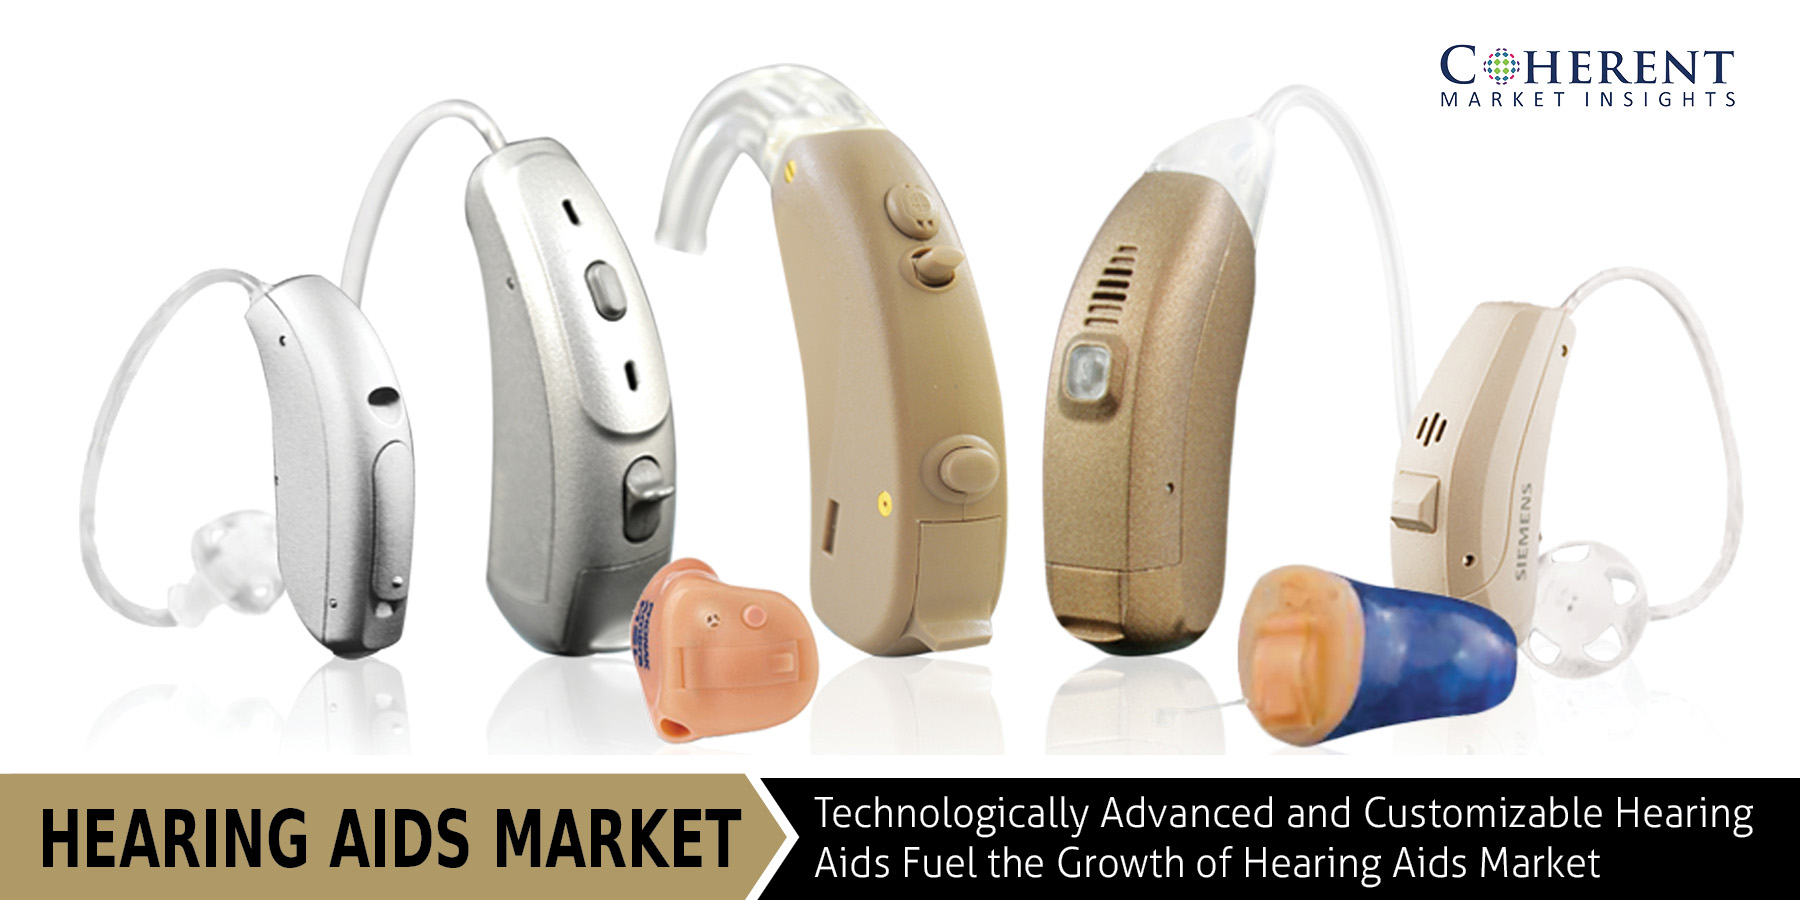 Hearing Aids Market to Surpass US$ 11.2 Billion Threshold by 2025, as Digital Hearing Aids Segment Takes Center Stage